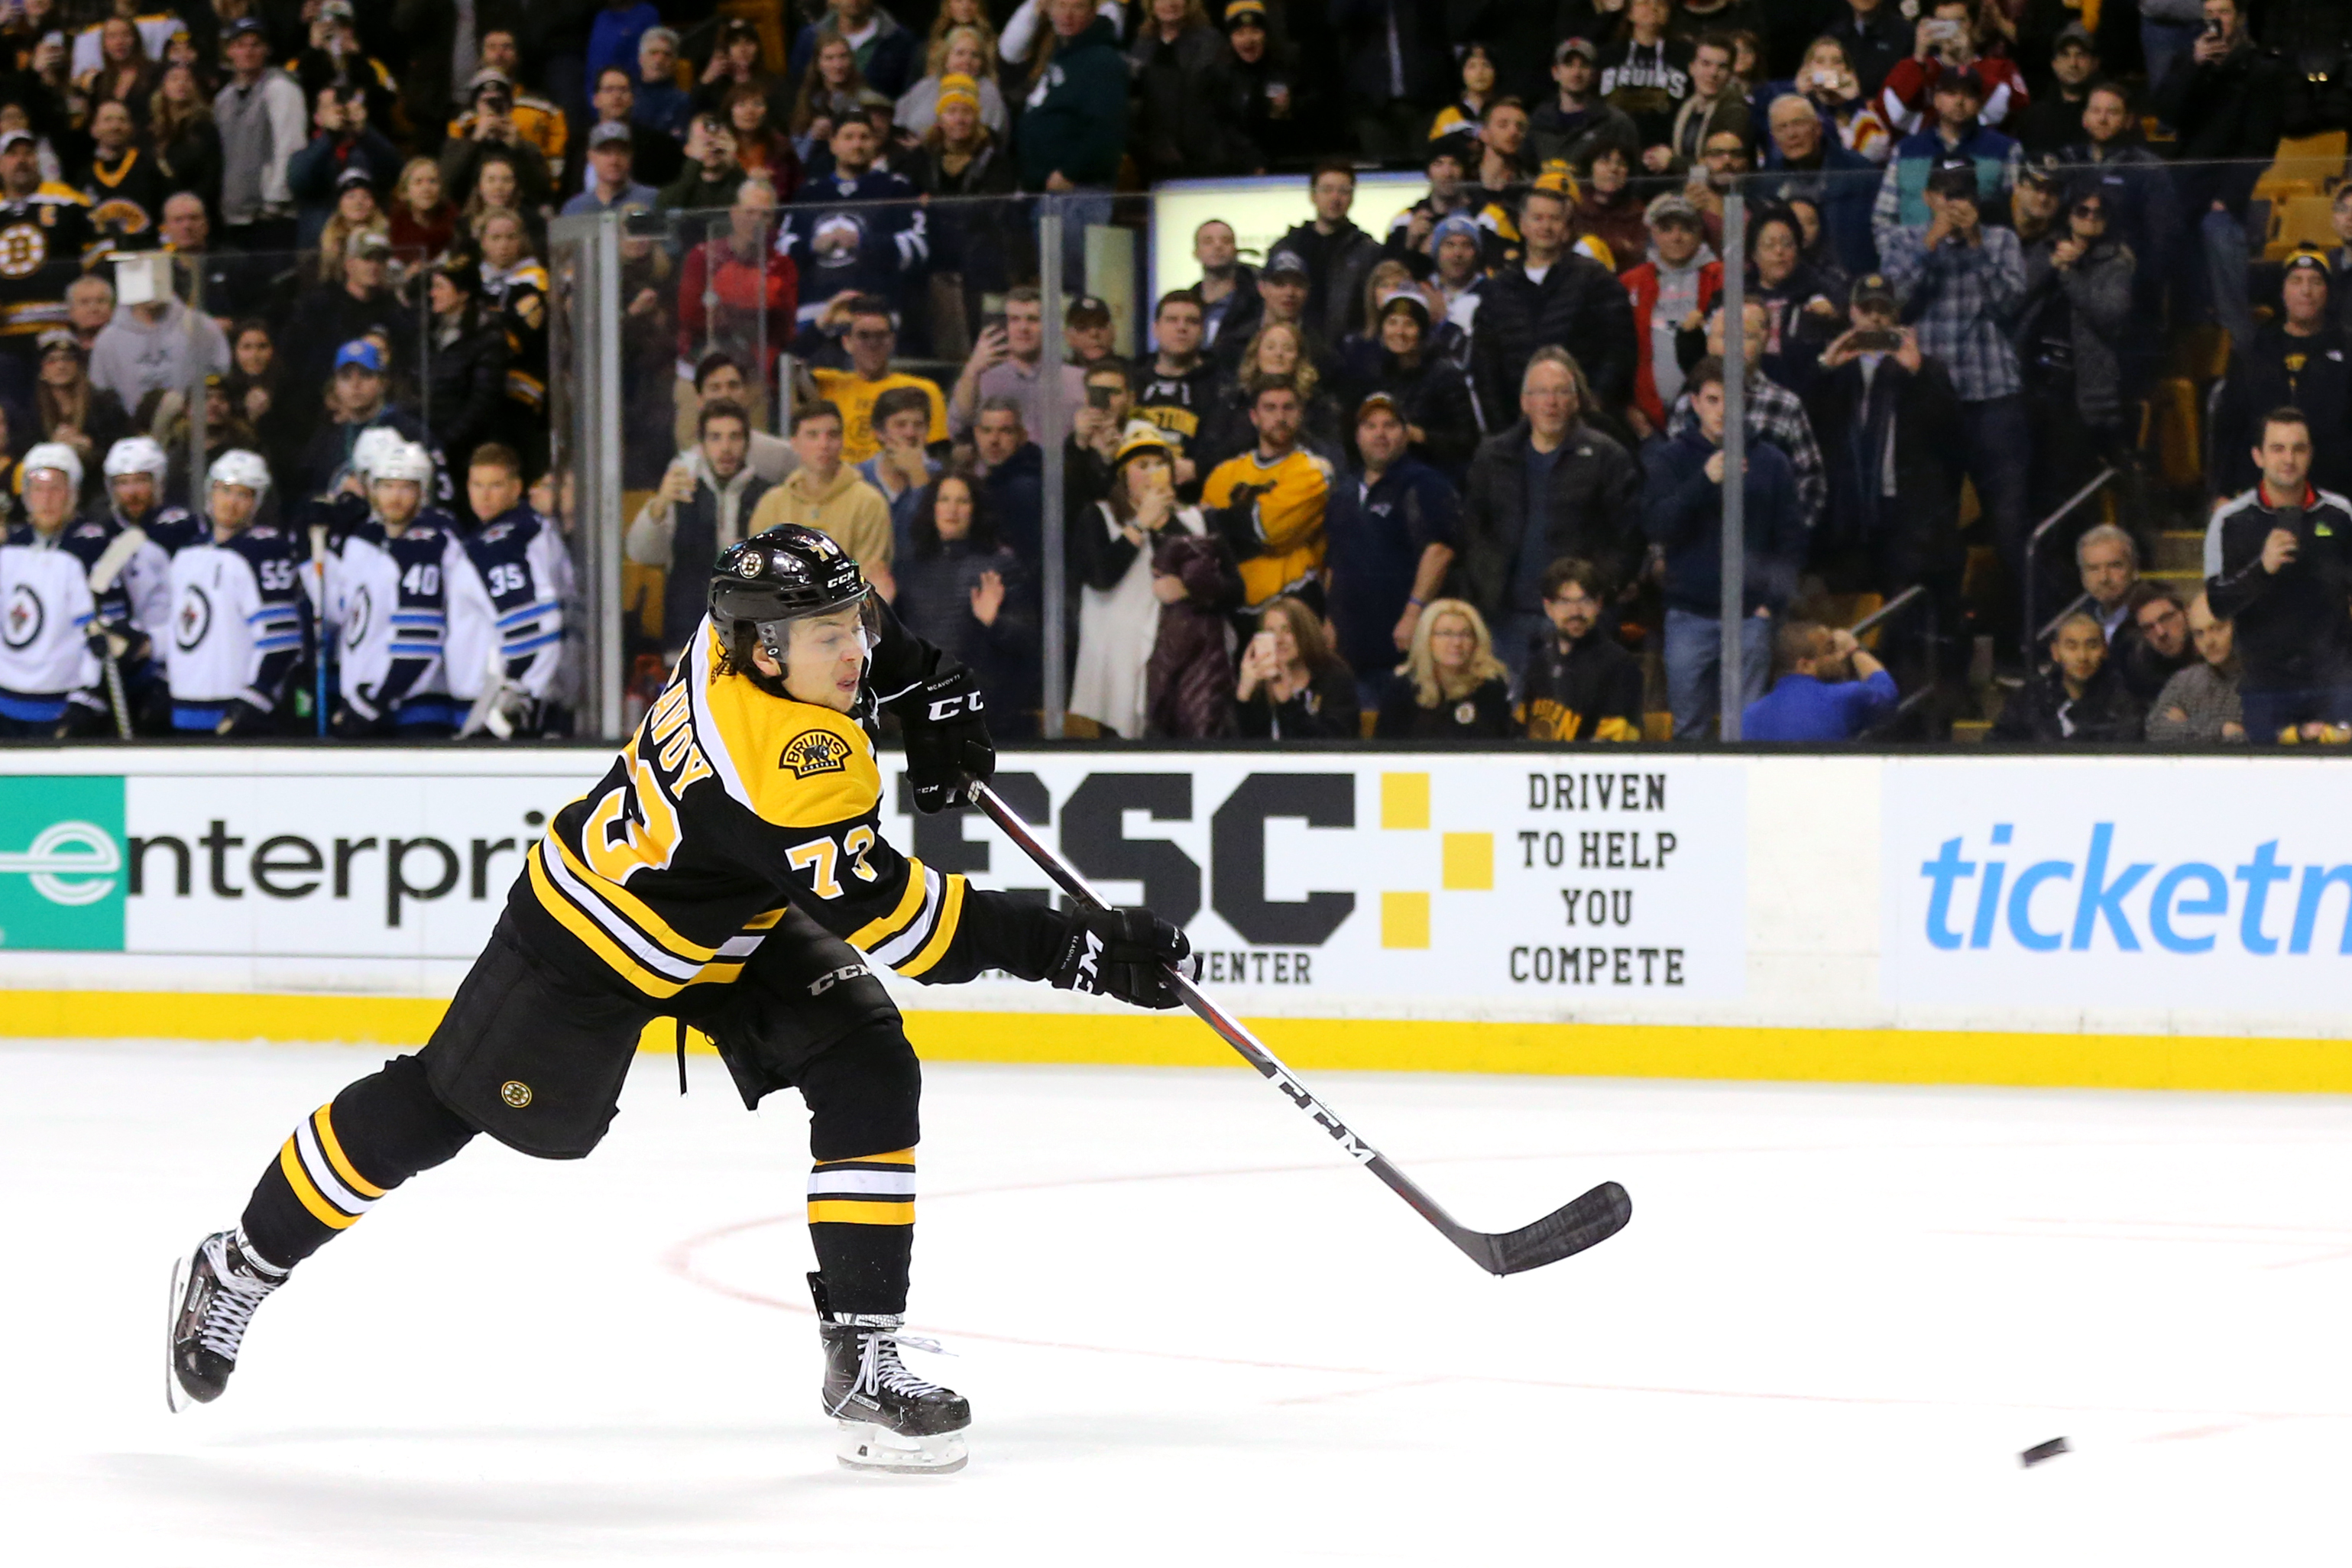 Bruins Get Past Red Wings in Third Period